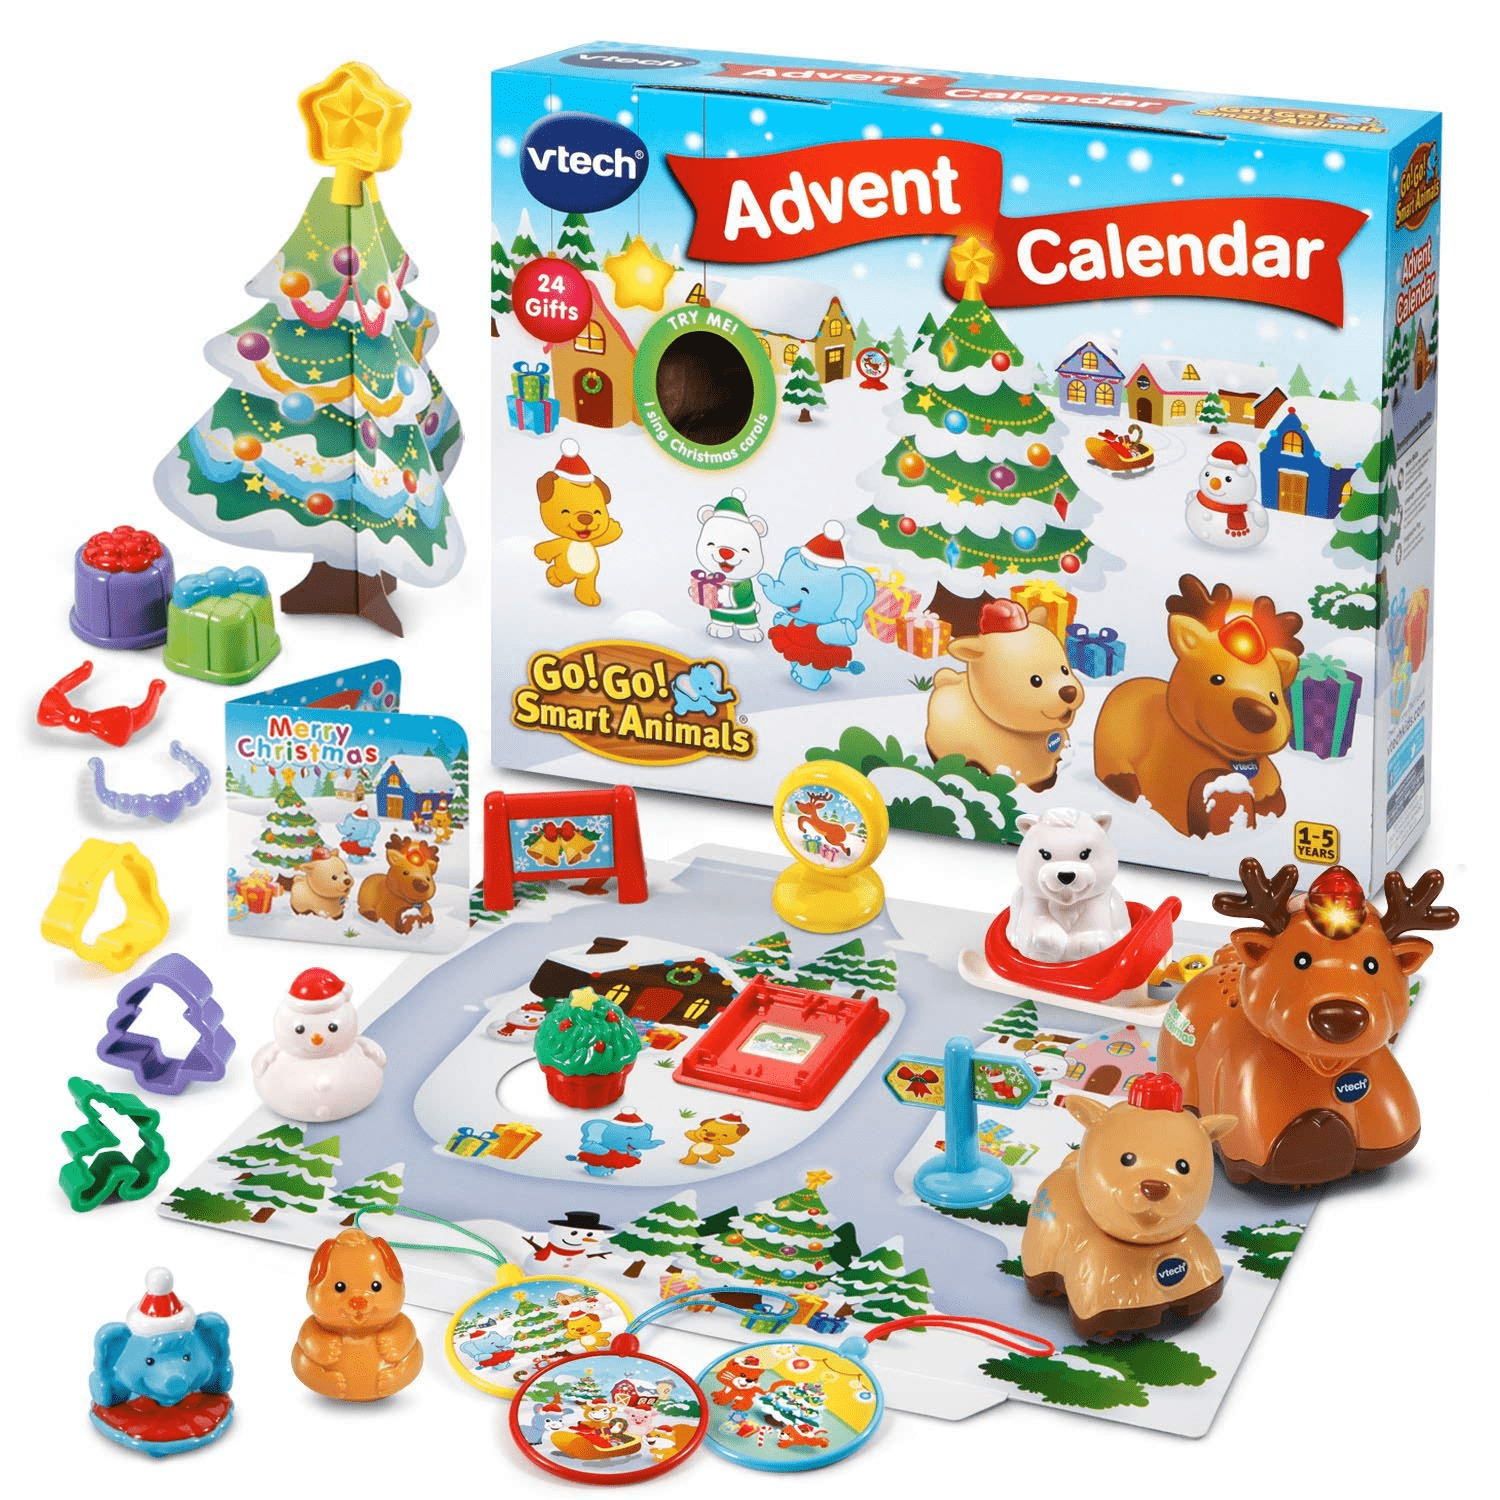 2018 VTech Advent Calendar Available Now!